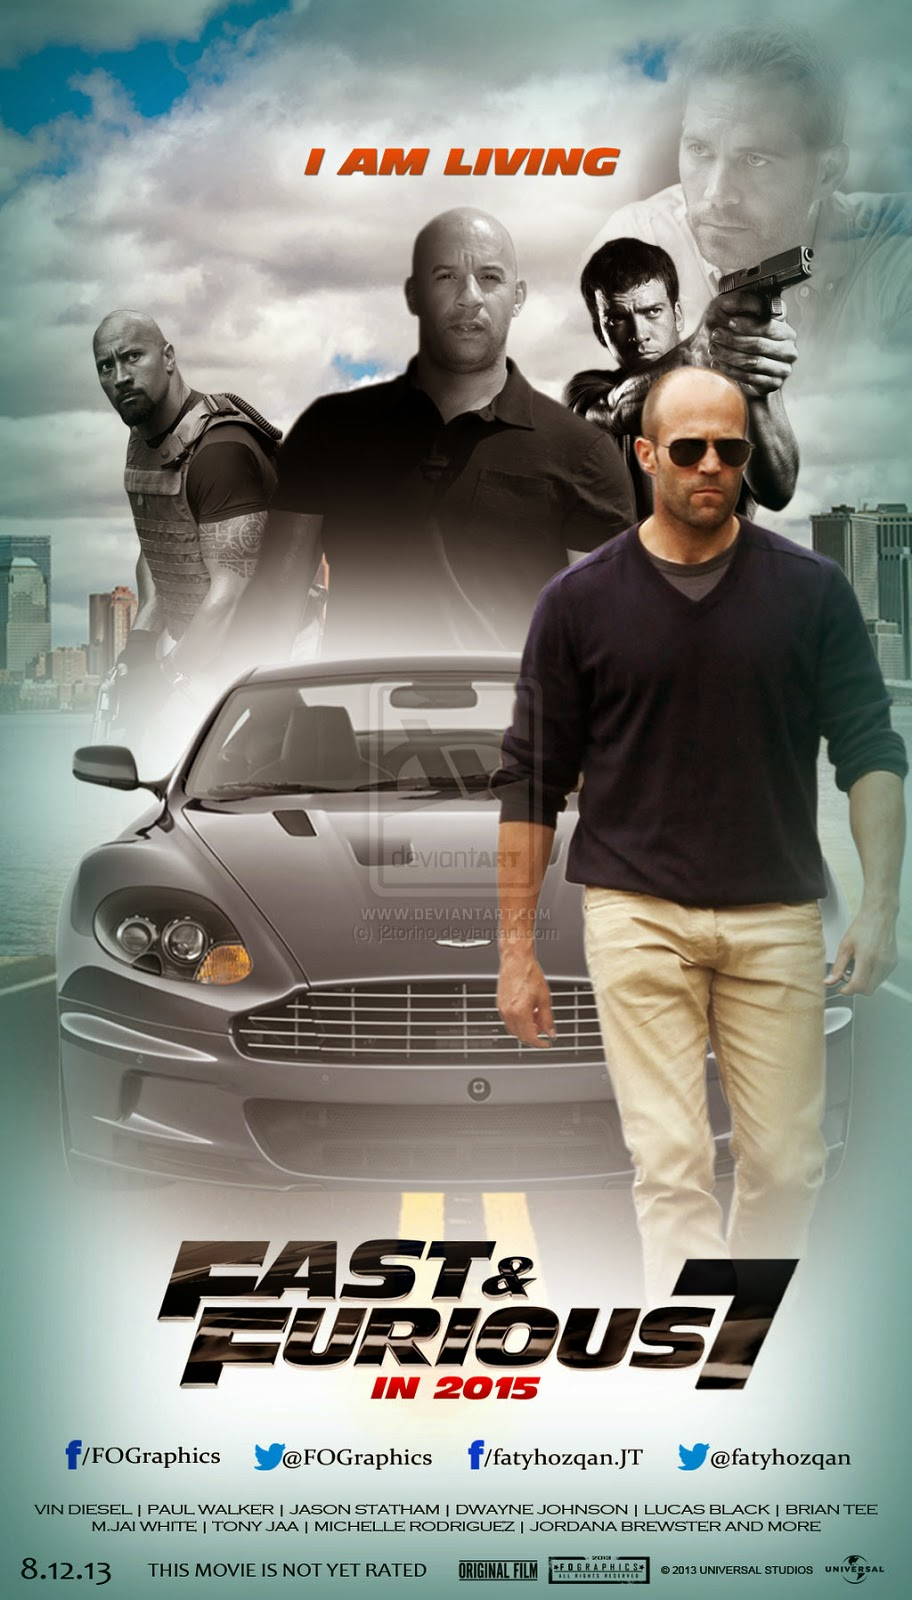 furious 7 full movie free download download furious 7 full movie free